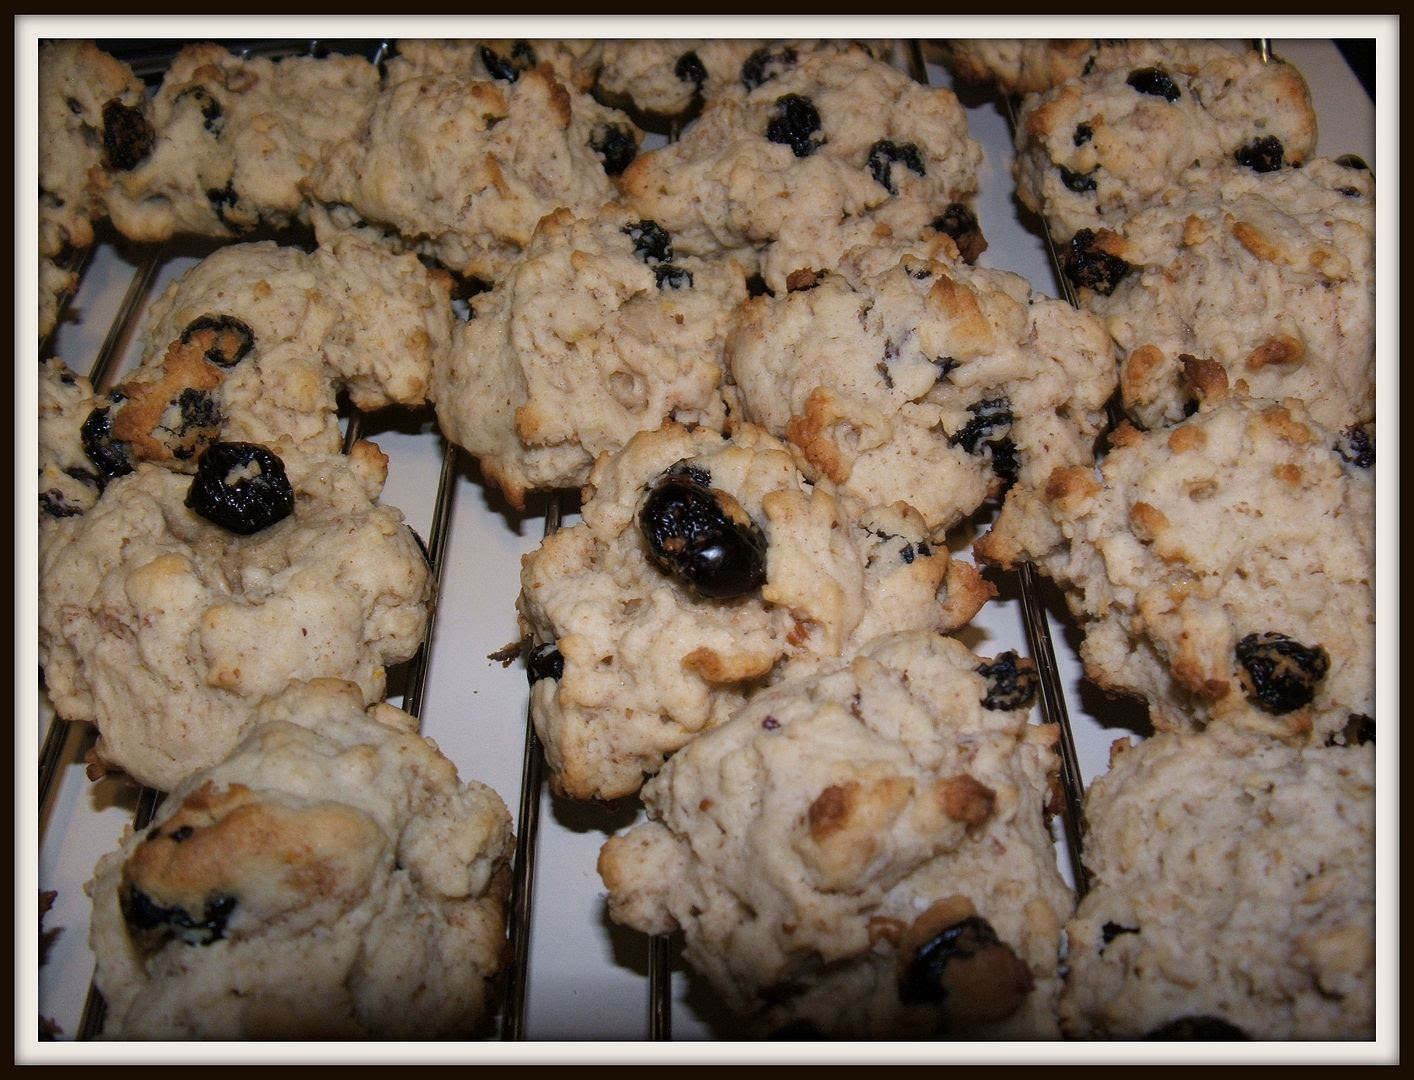 Lemon Blueberry Cookies by Angie Ouellette-Tower for godsgrowinggarden.com photo 006_zps39cad199.jpg